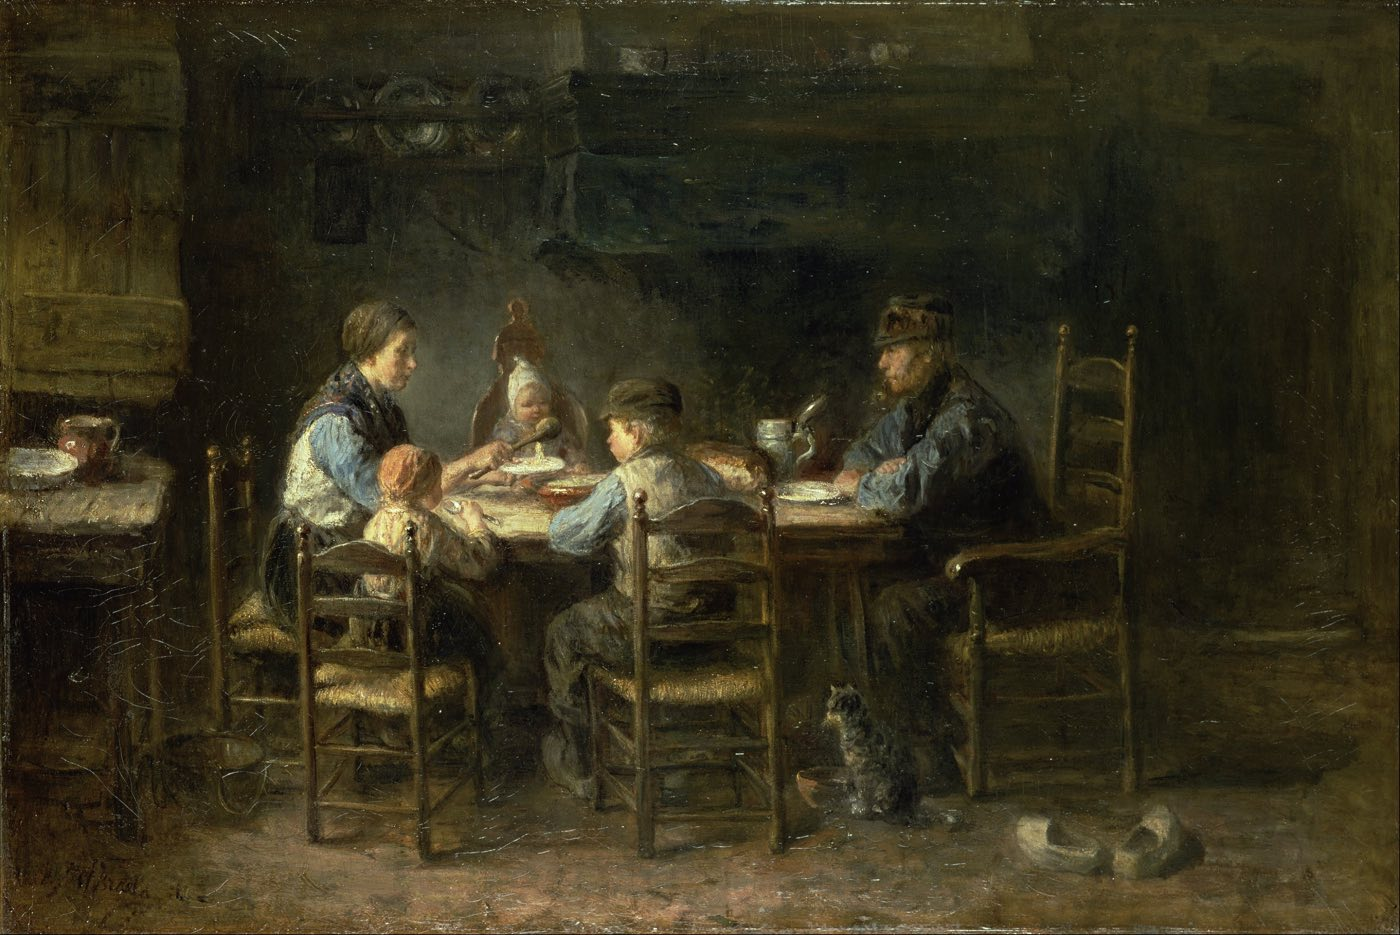 Jozef_Israëls_-_Peasant_family_at_the_table_-_Google_Art_Project